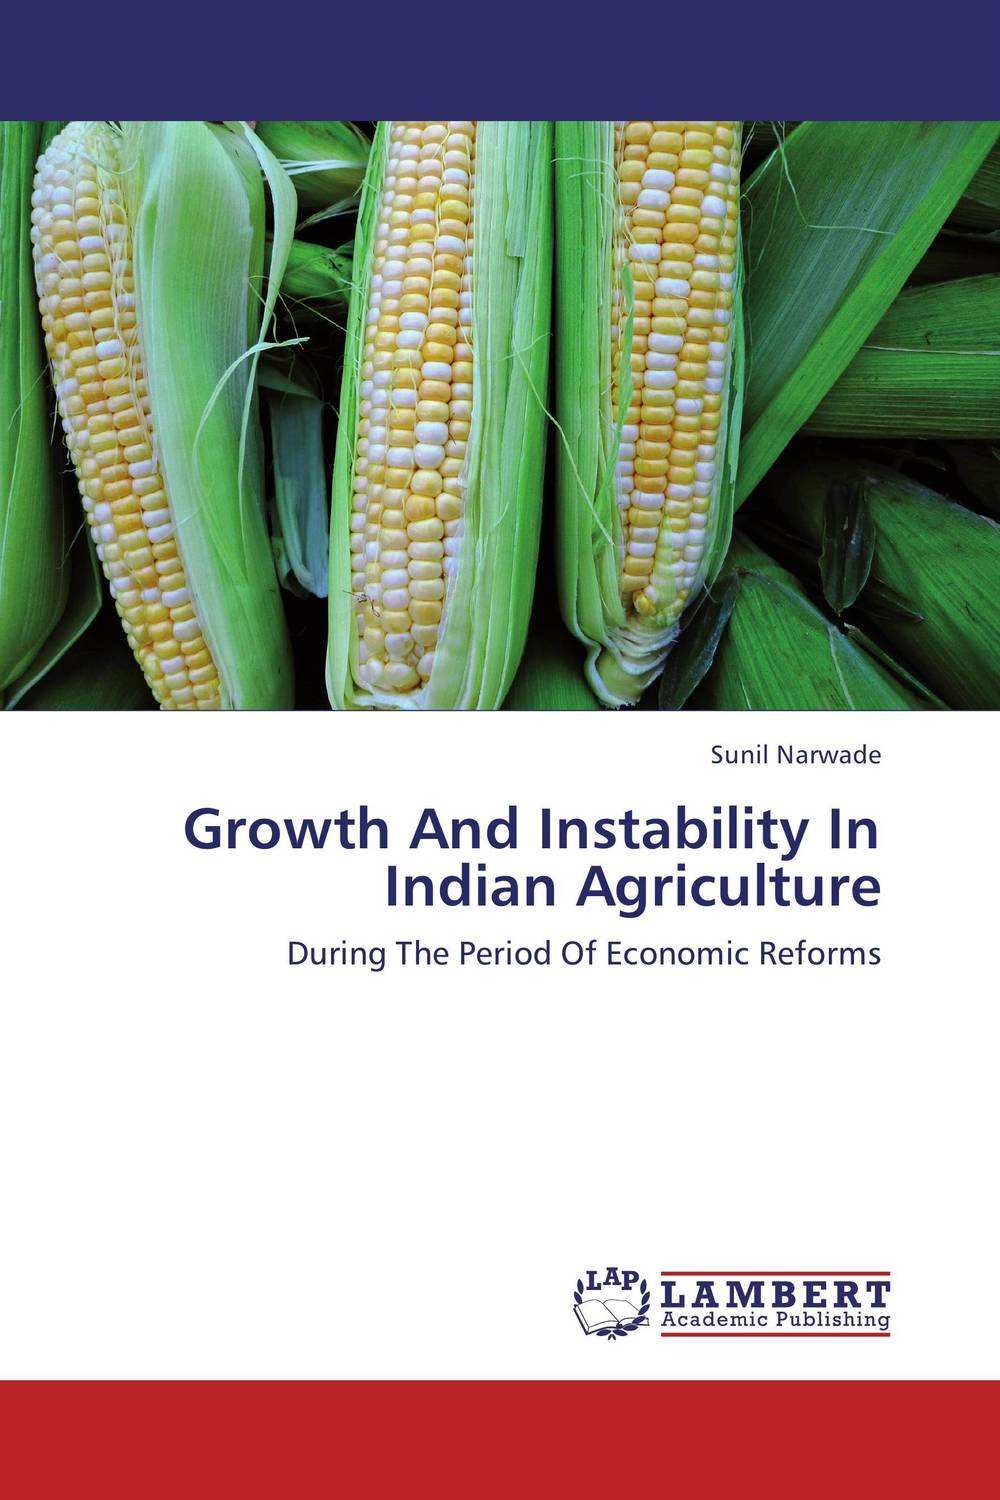 Growth And Instability In Indian Agriculture performance or instability